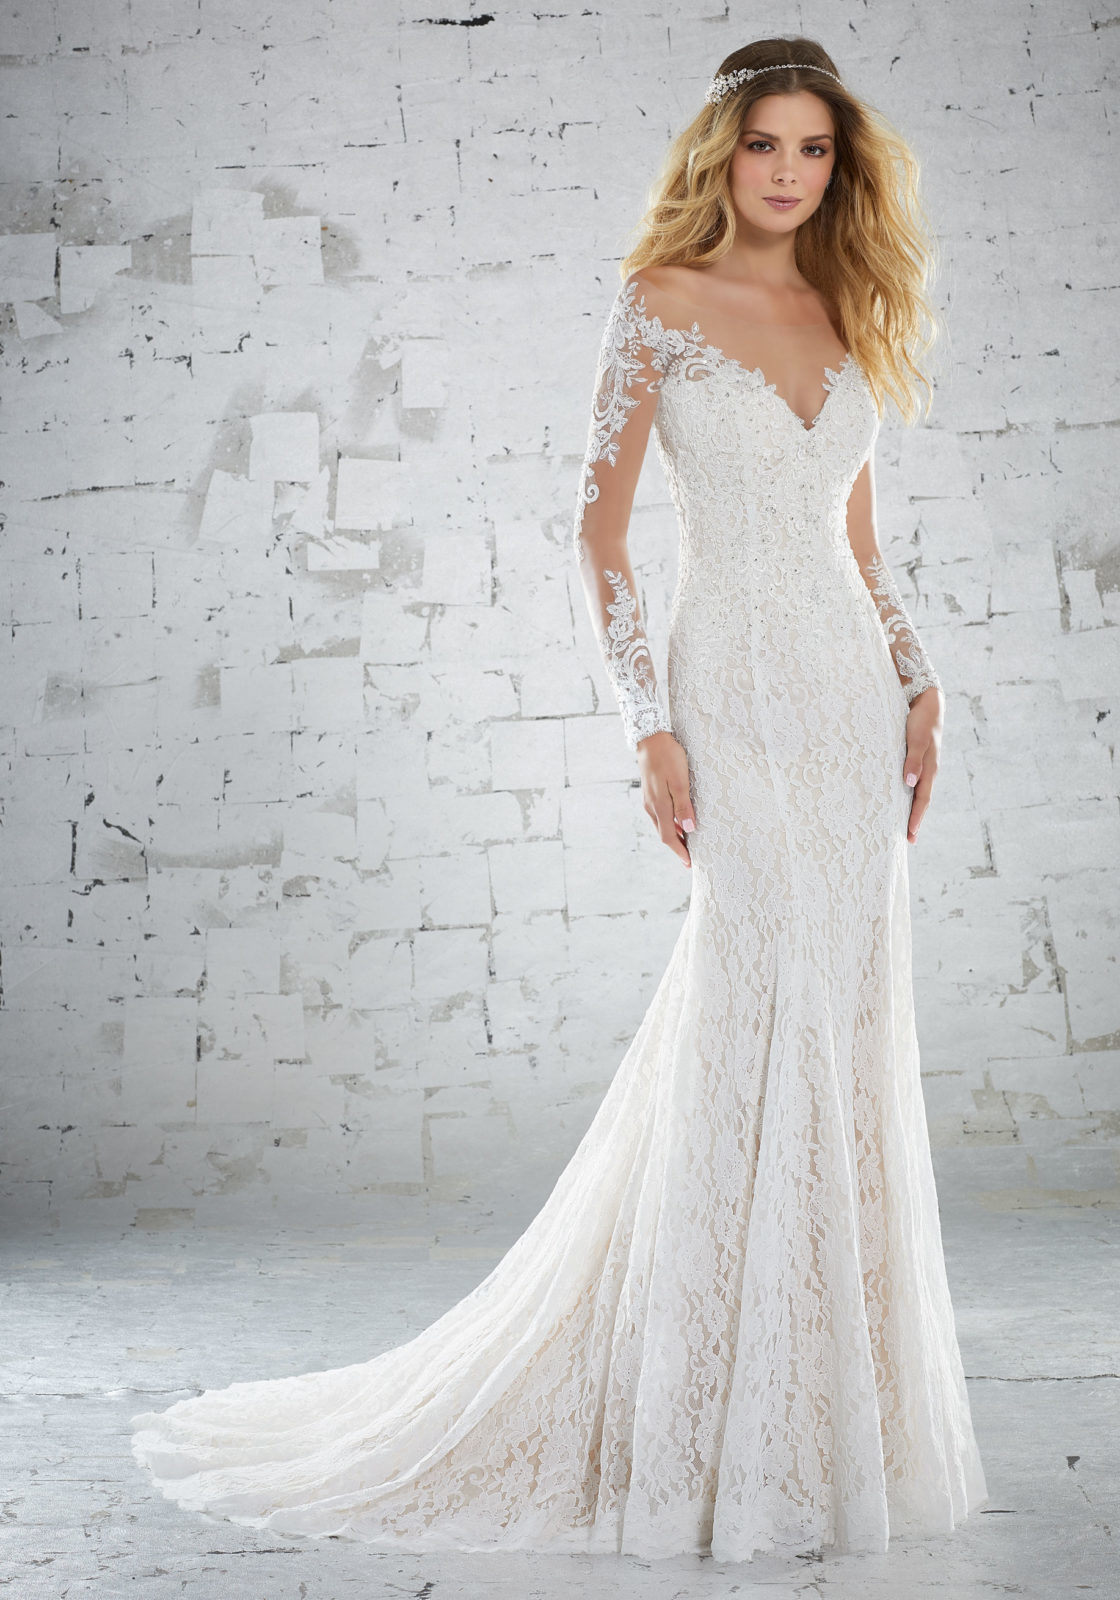 d4a89e9835c1 China Lace Bridal Gowns Long Sleeves Lace Mermaid Beach Wedding Dresses  Y6888 - China Wedding Dress, Mother of The Bride Dress